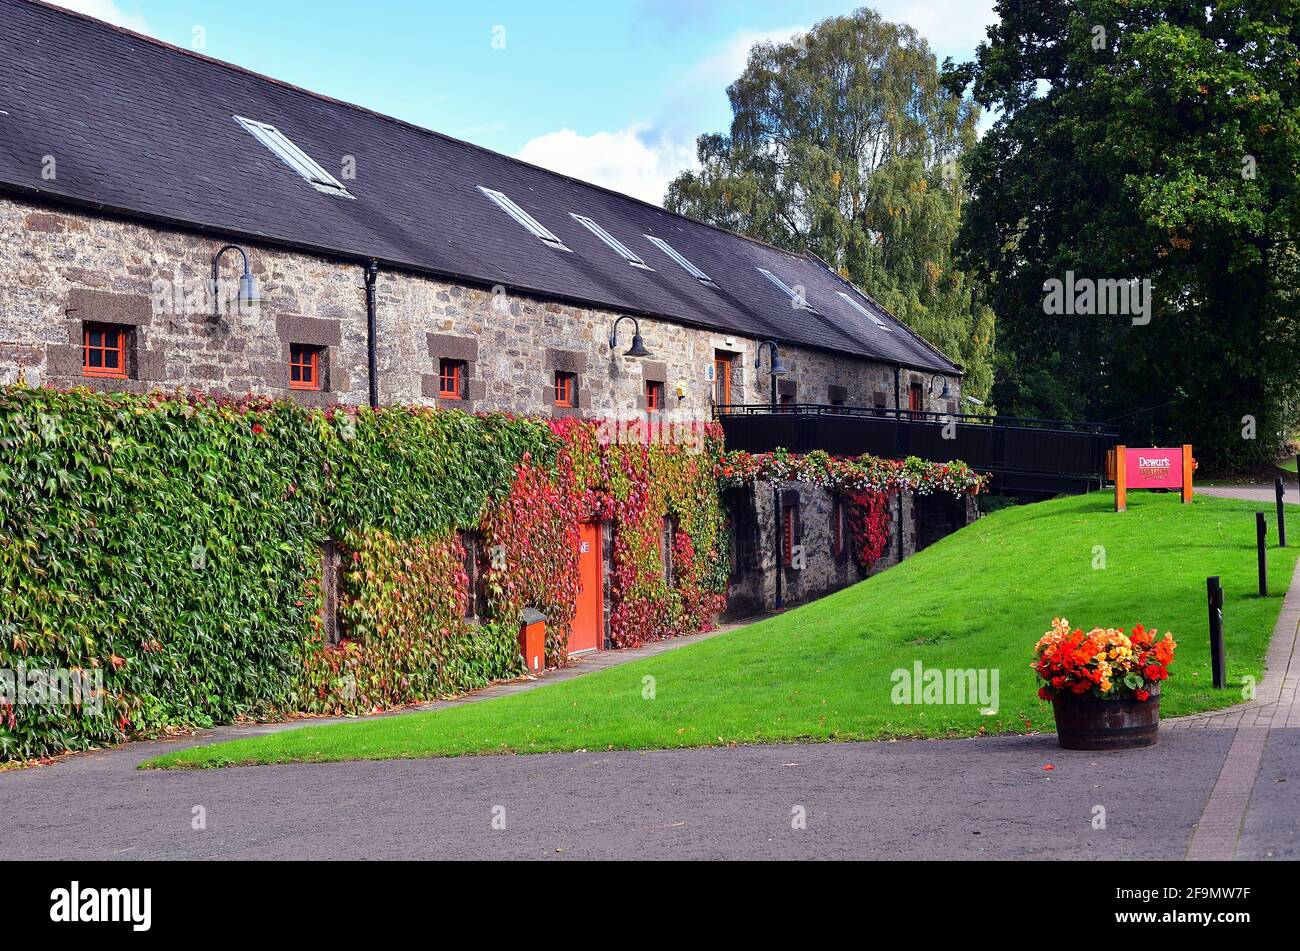 Aberfeldy, Scotland, United Kingdom. The Dewar's Distillery, founded in 1846, is now owned by Bacardi. Stock Photo